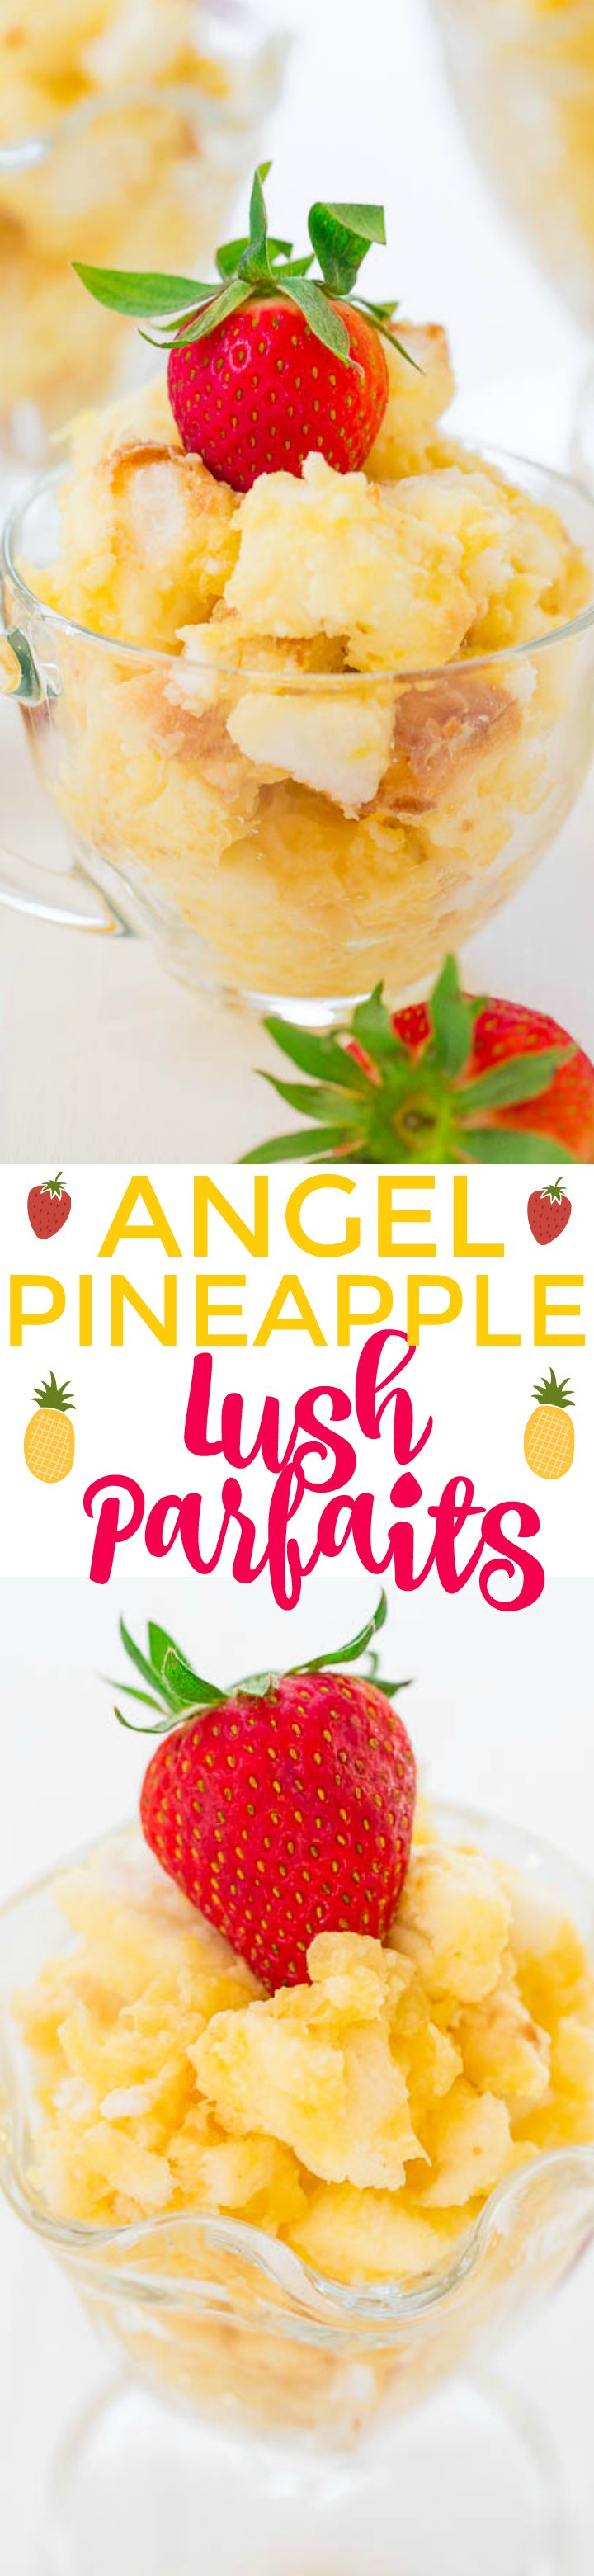 Angel Pineapple Lush Parfaits - An EASY, 4-ingredient, NO-BAKE dessert!! Perfect for summer because you don't have to turn your oven on! Fluffy, light, airy, and wonderfully refreshing!!